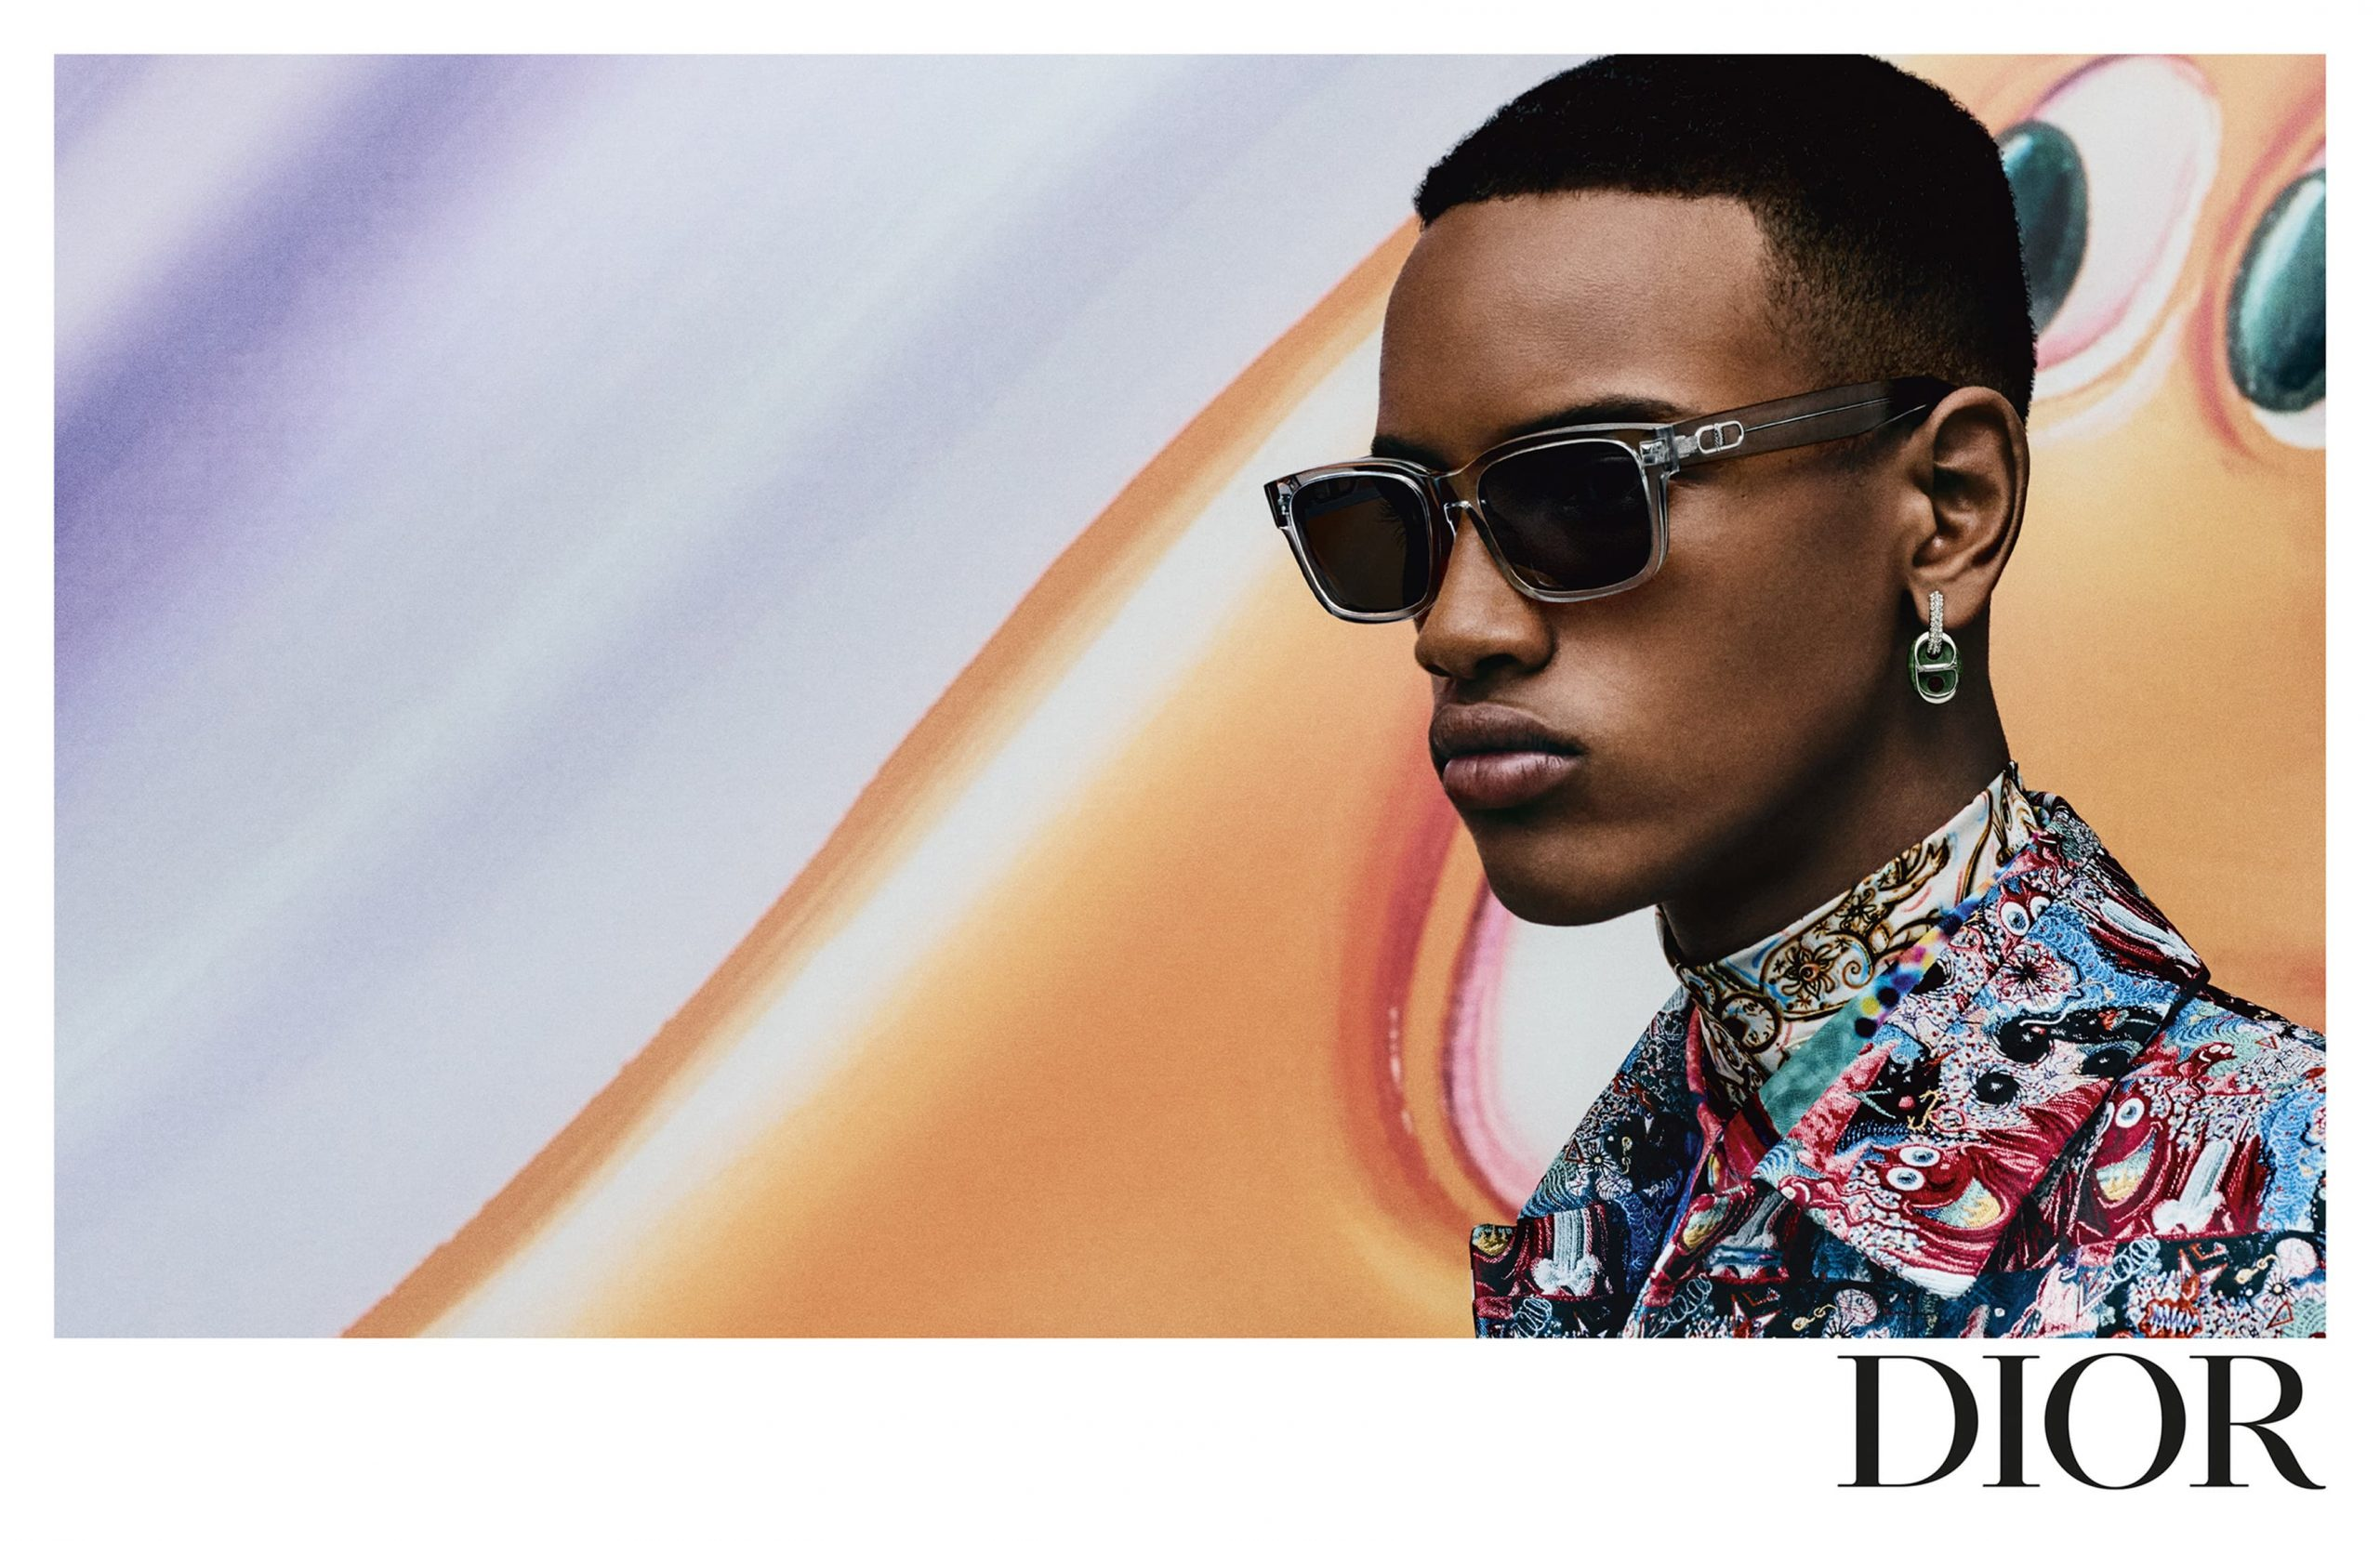 Dior Men's Pre-Fall 202 Ad Campaign Photos